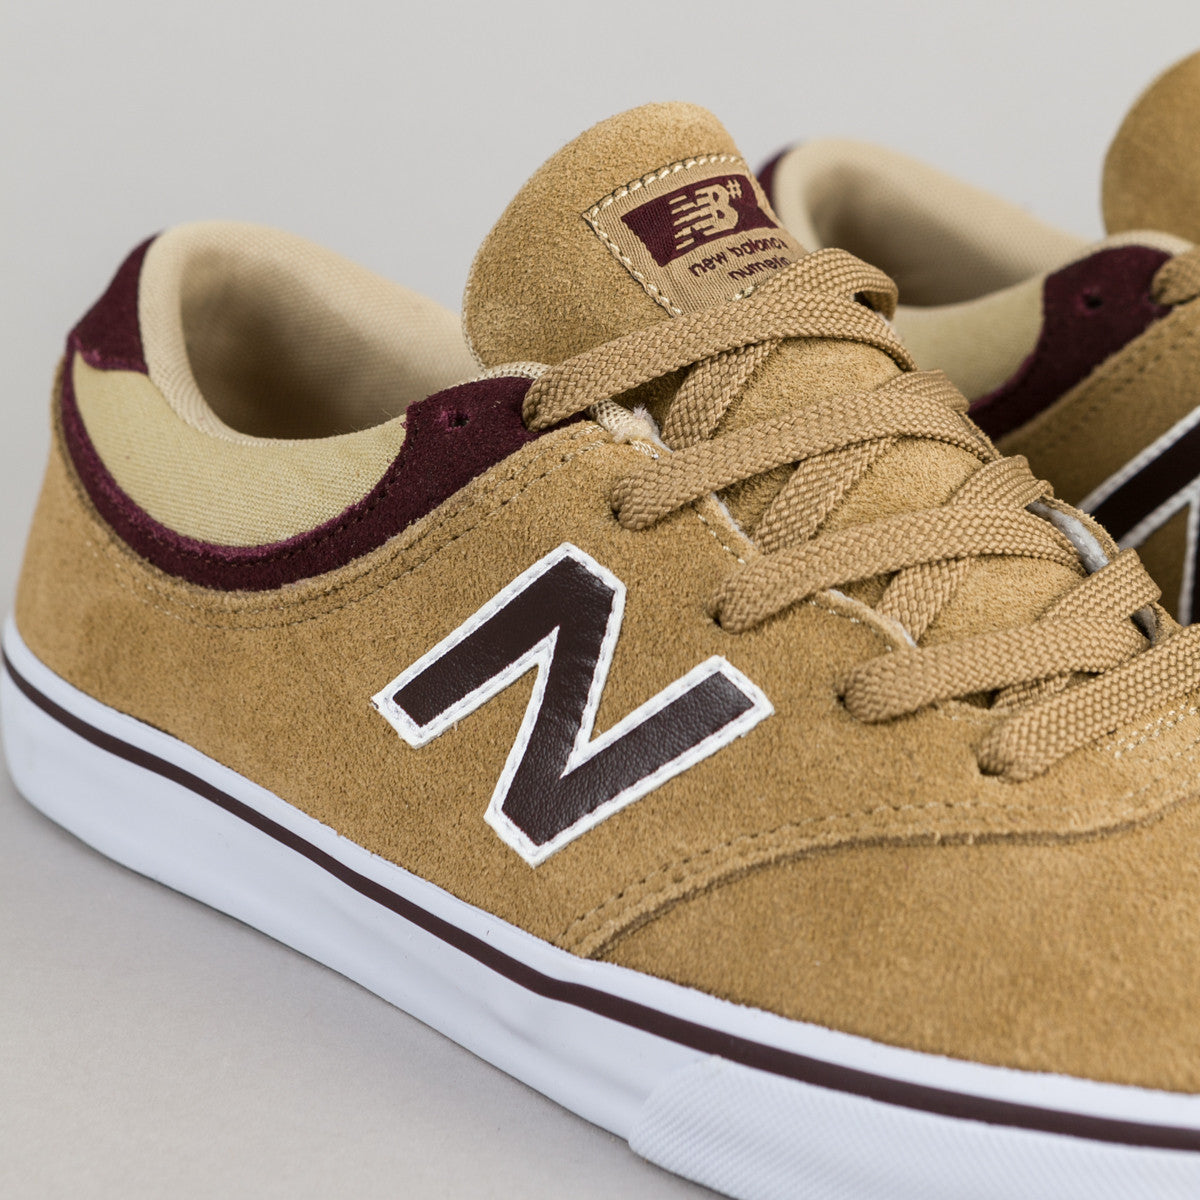 New Balance Numeric Quincy 254 Shoes - Dust / Supernova